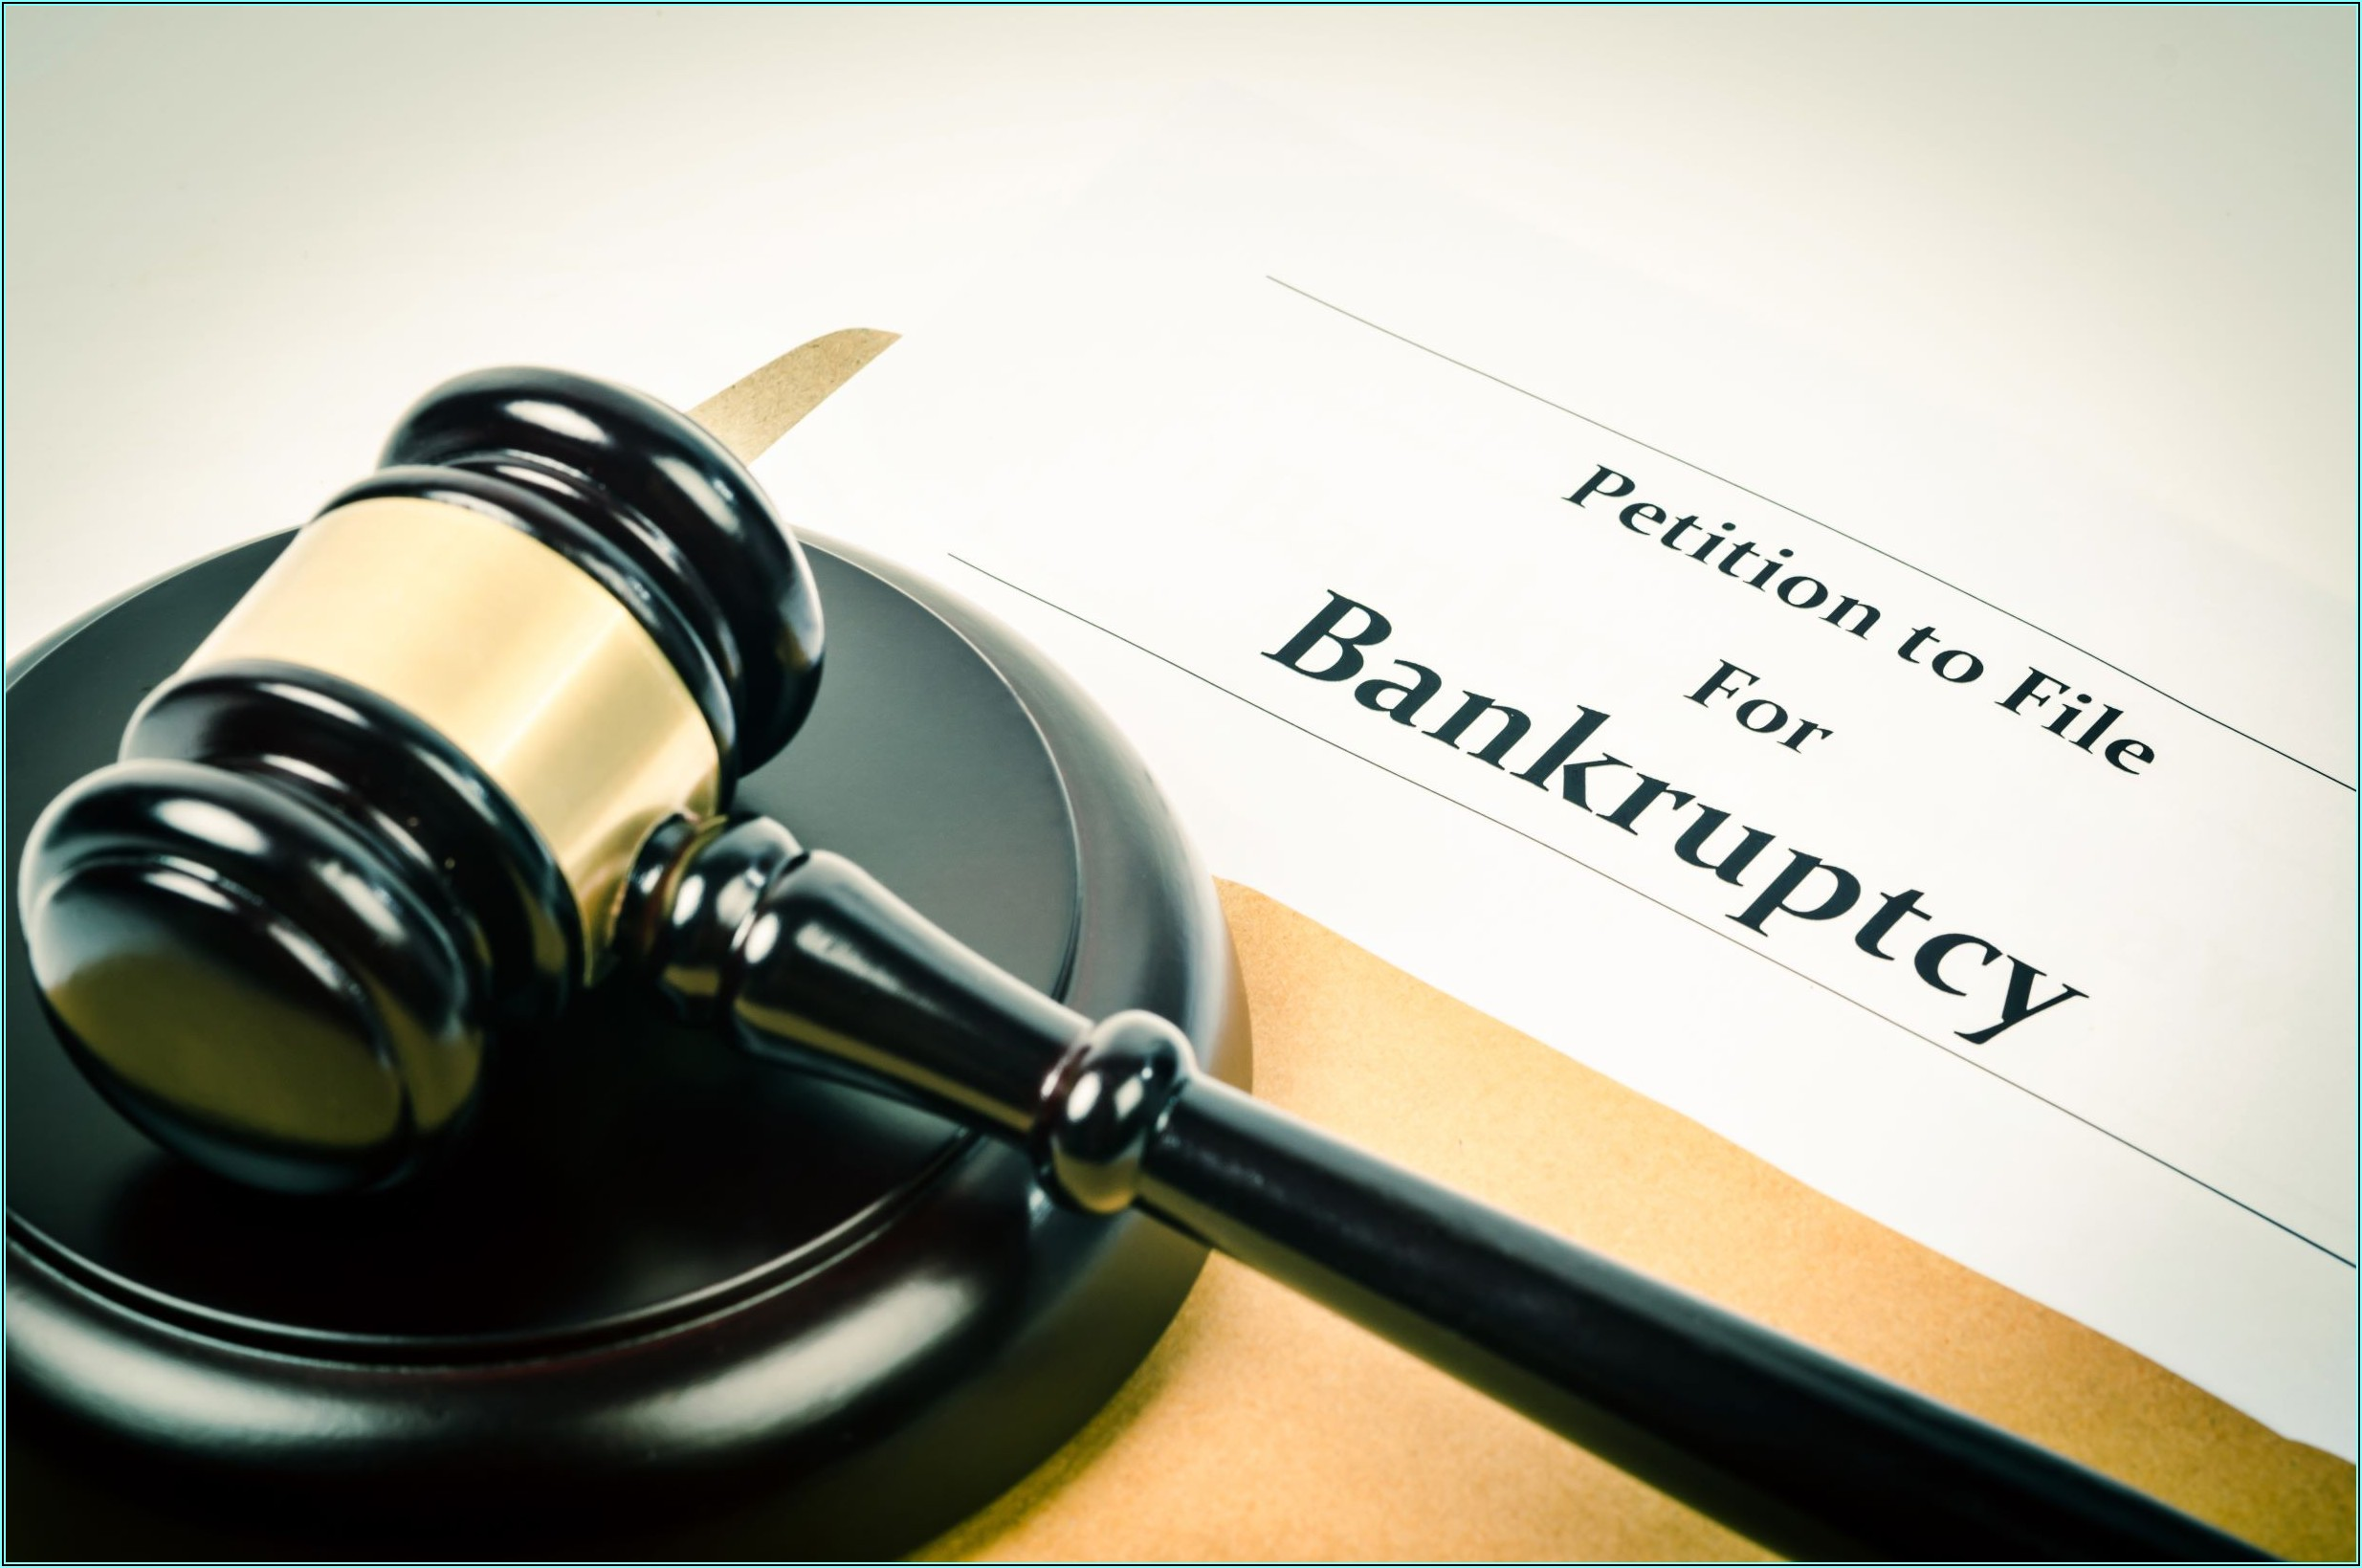 Chapter 7 Bankruptcy Forms South Carolina